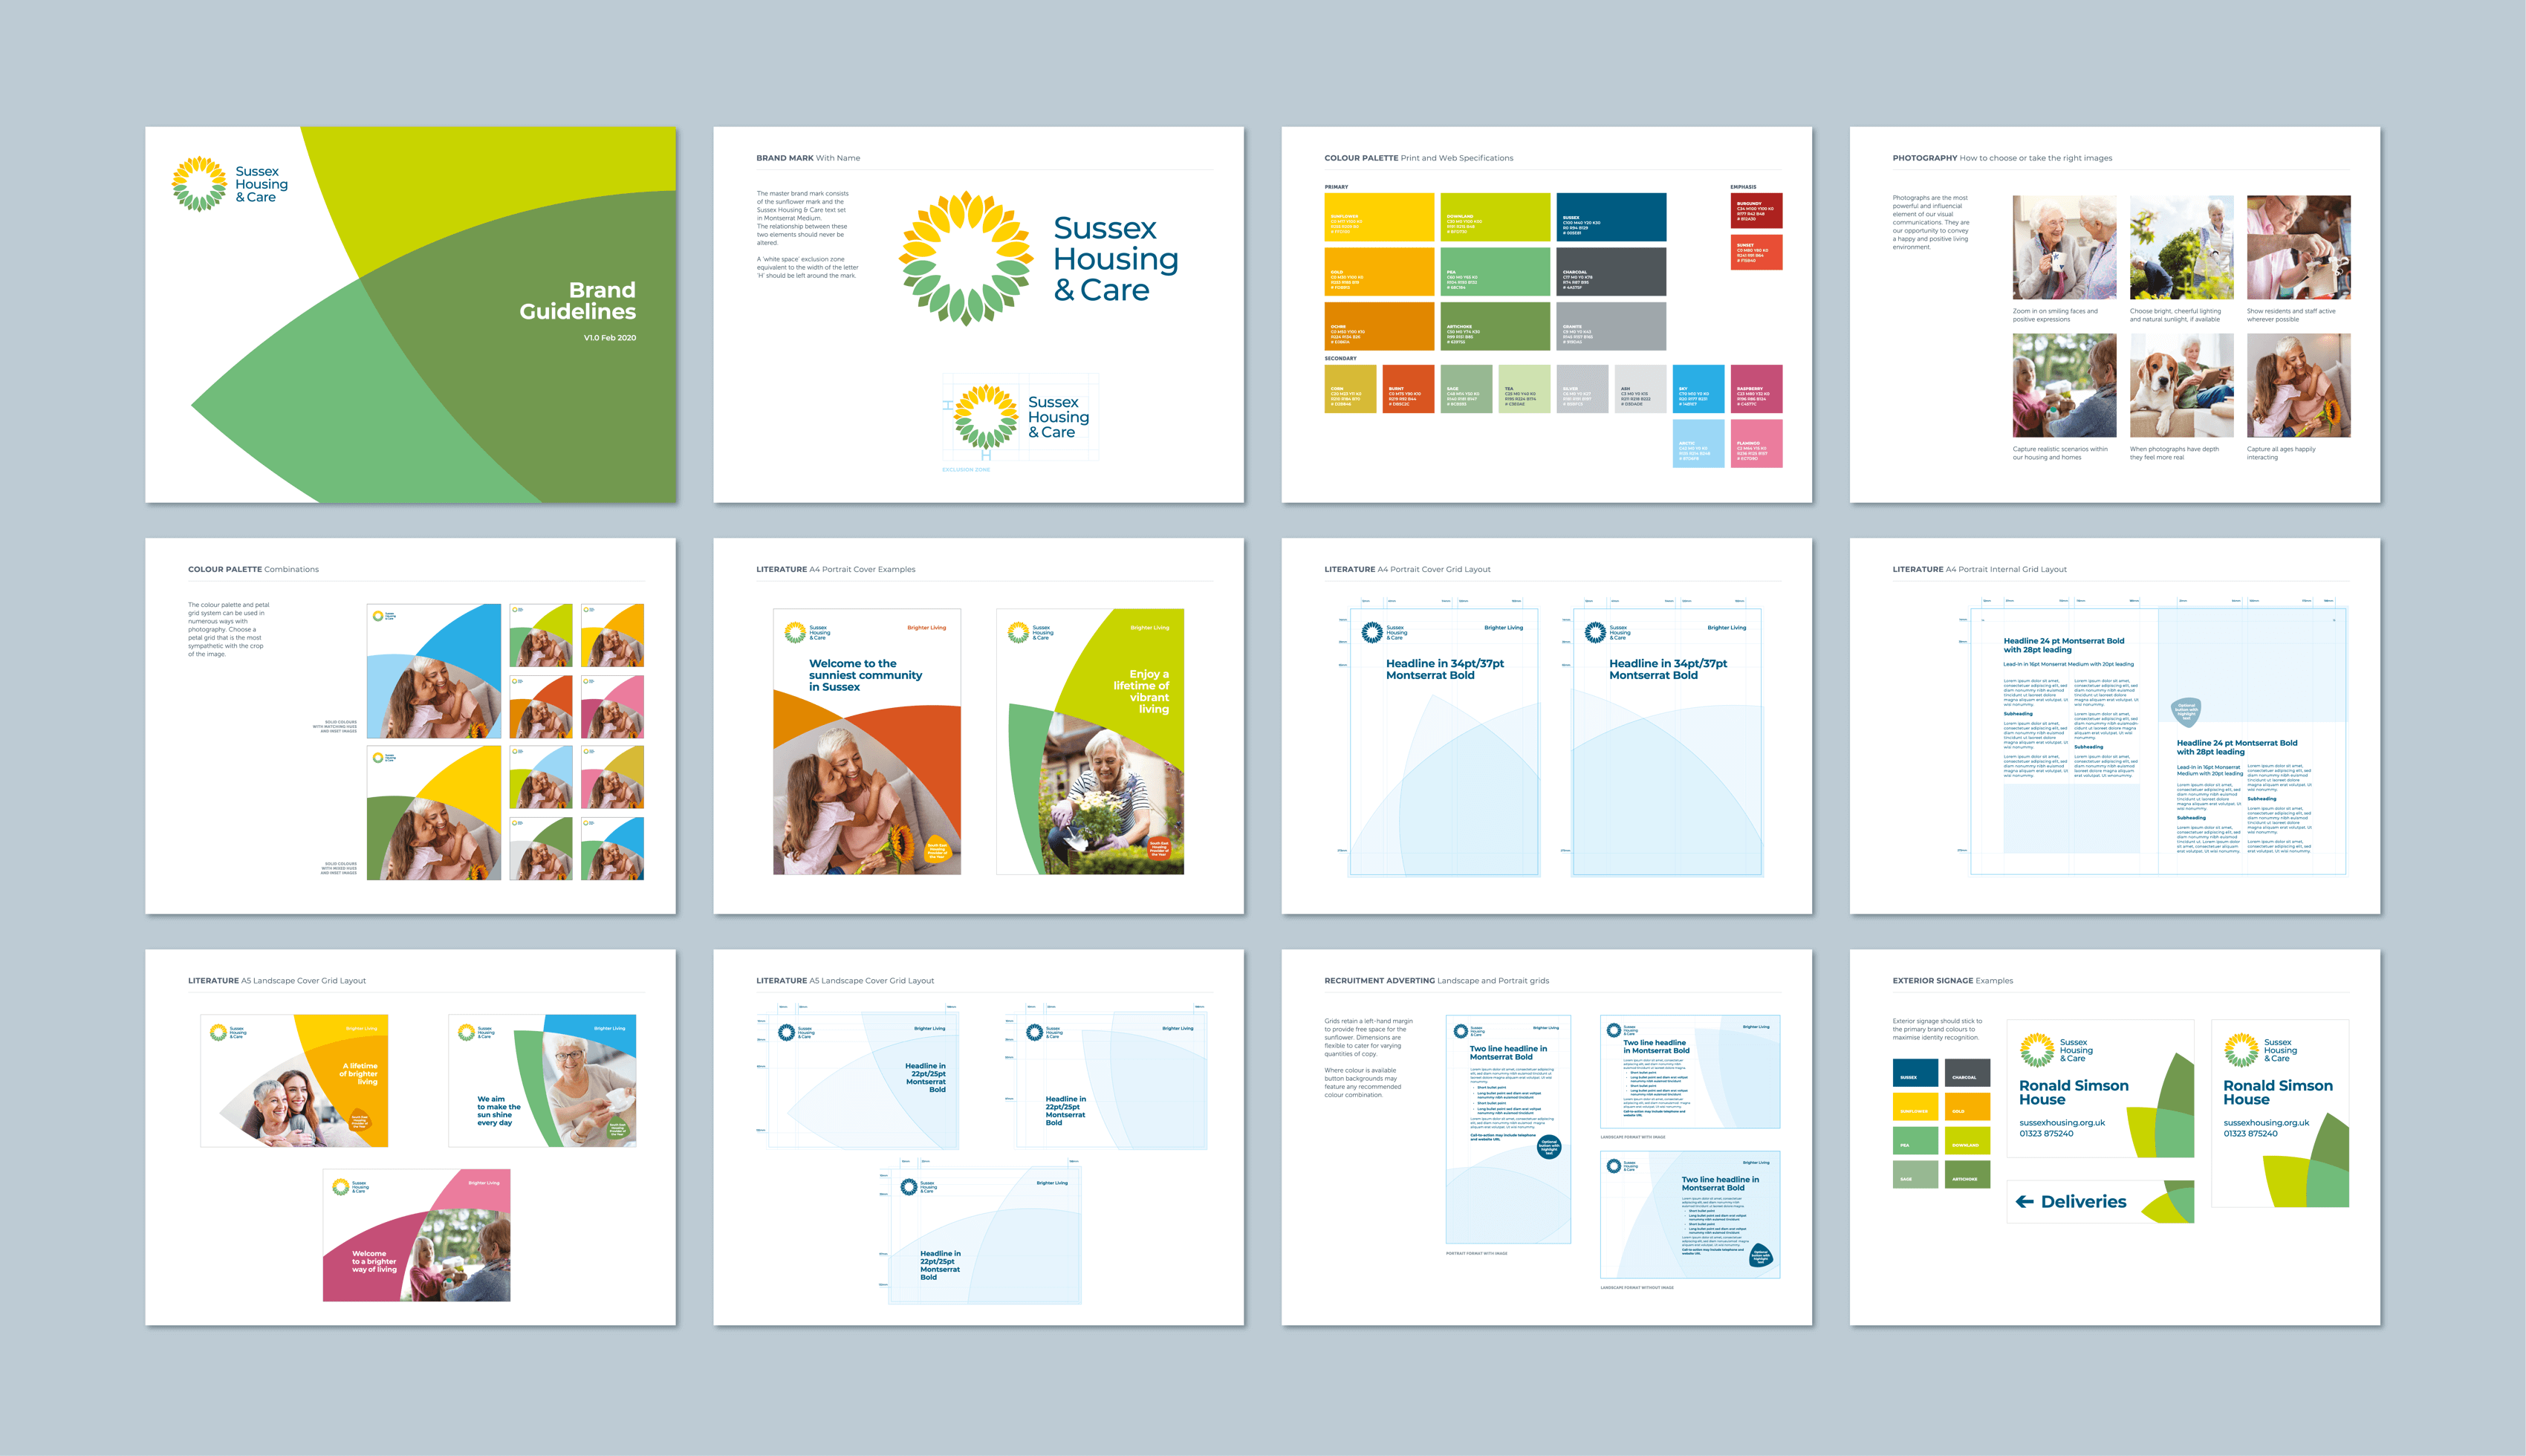 Sussex Housing & Care brand guidelines